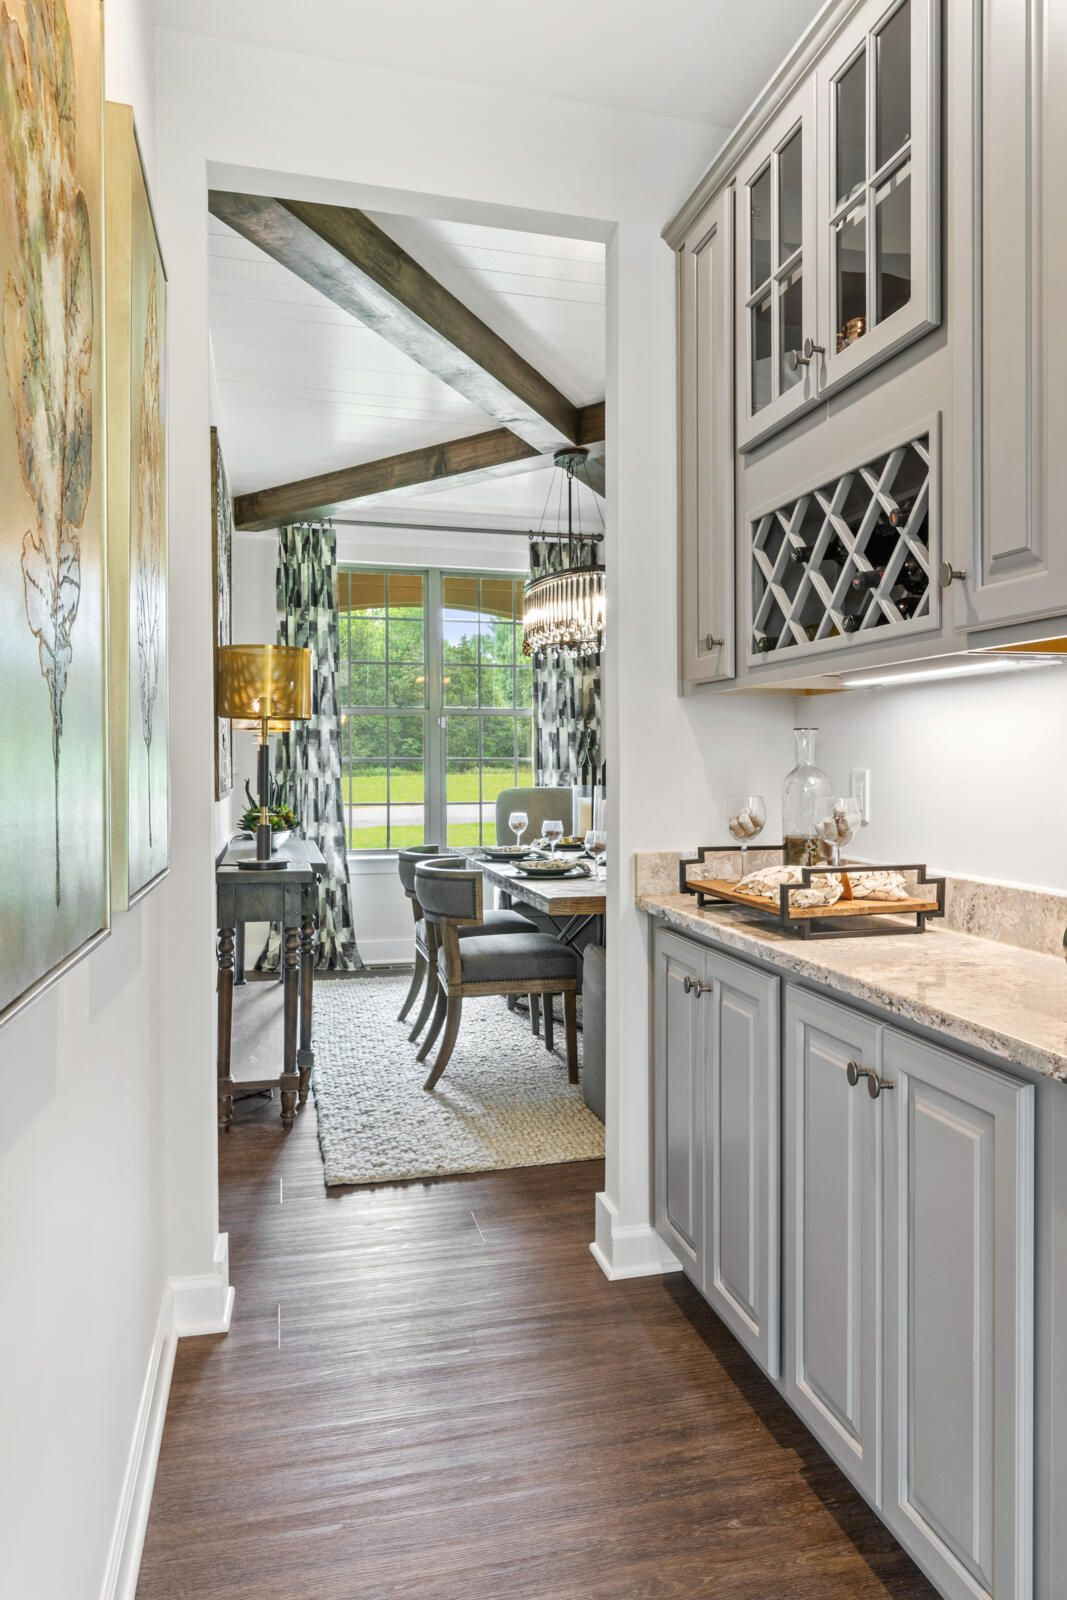 Butler S Pantry With Gray Cabinets Drees Homes The Dining Room With The Cross Beam Ceiling Oh Yeah House Floor Plans Home Elegant Dining Room